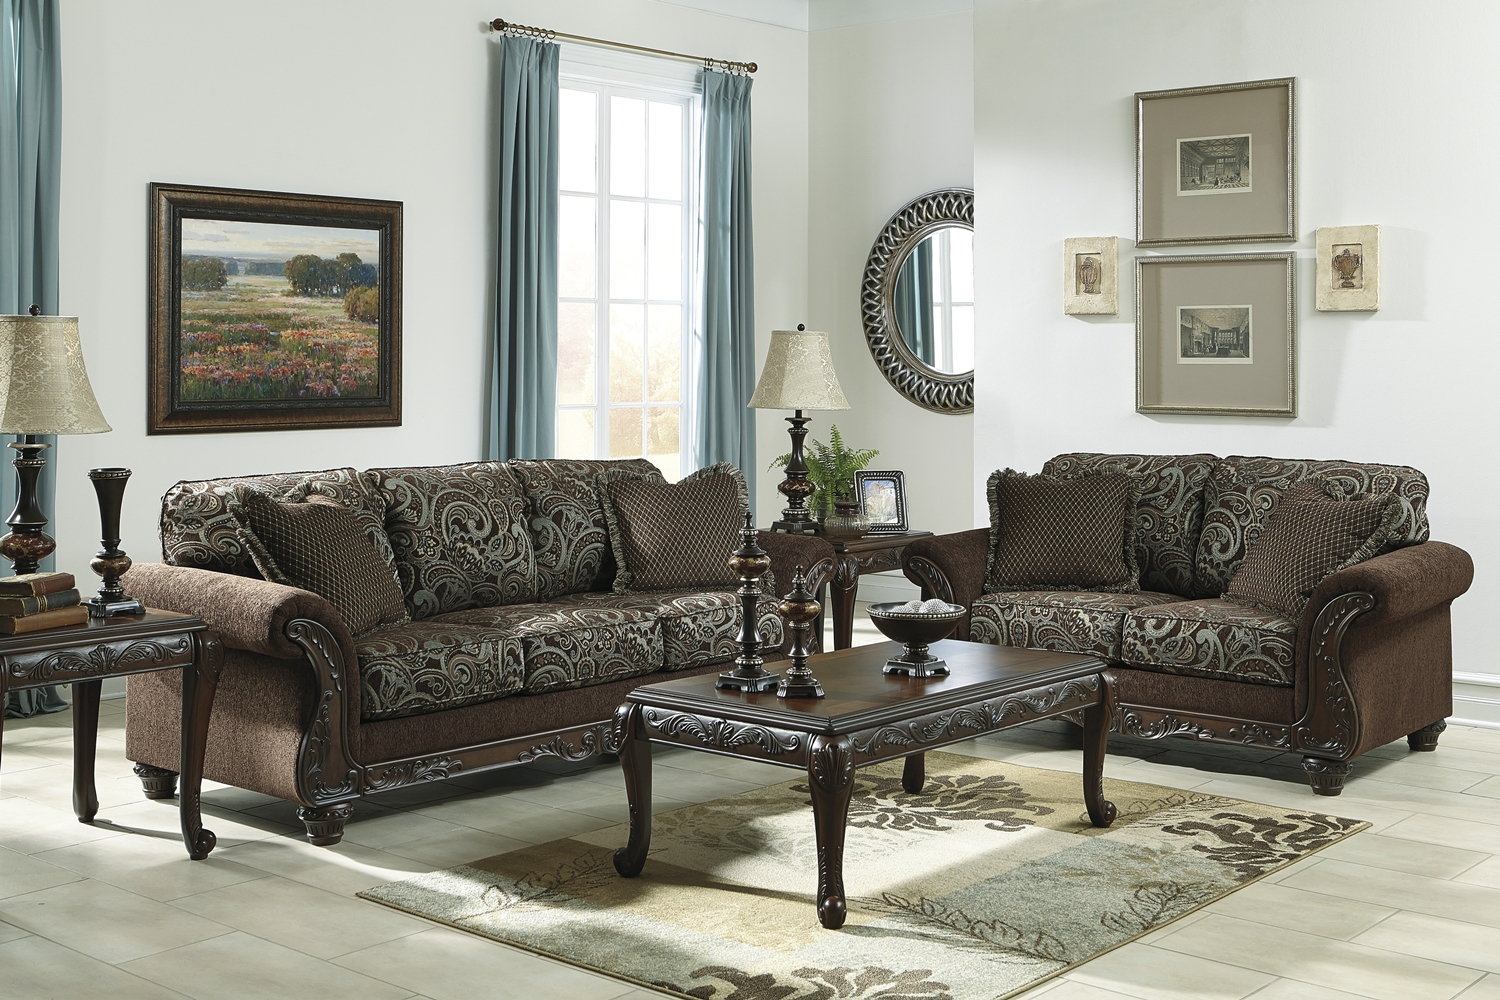 Traditional Style Brown Sofa & Love Seat Living Room Regarding Brown Sofa Chairs (View 15 of 15)